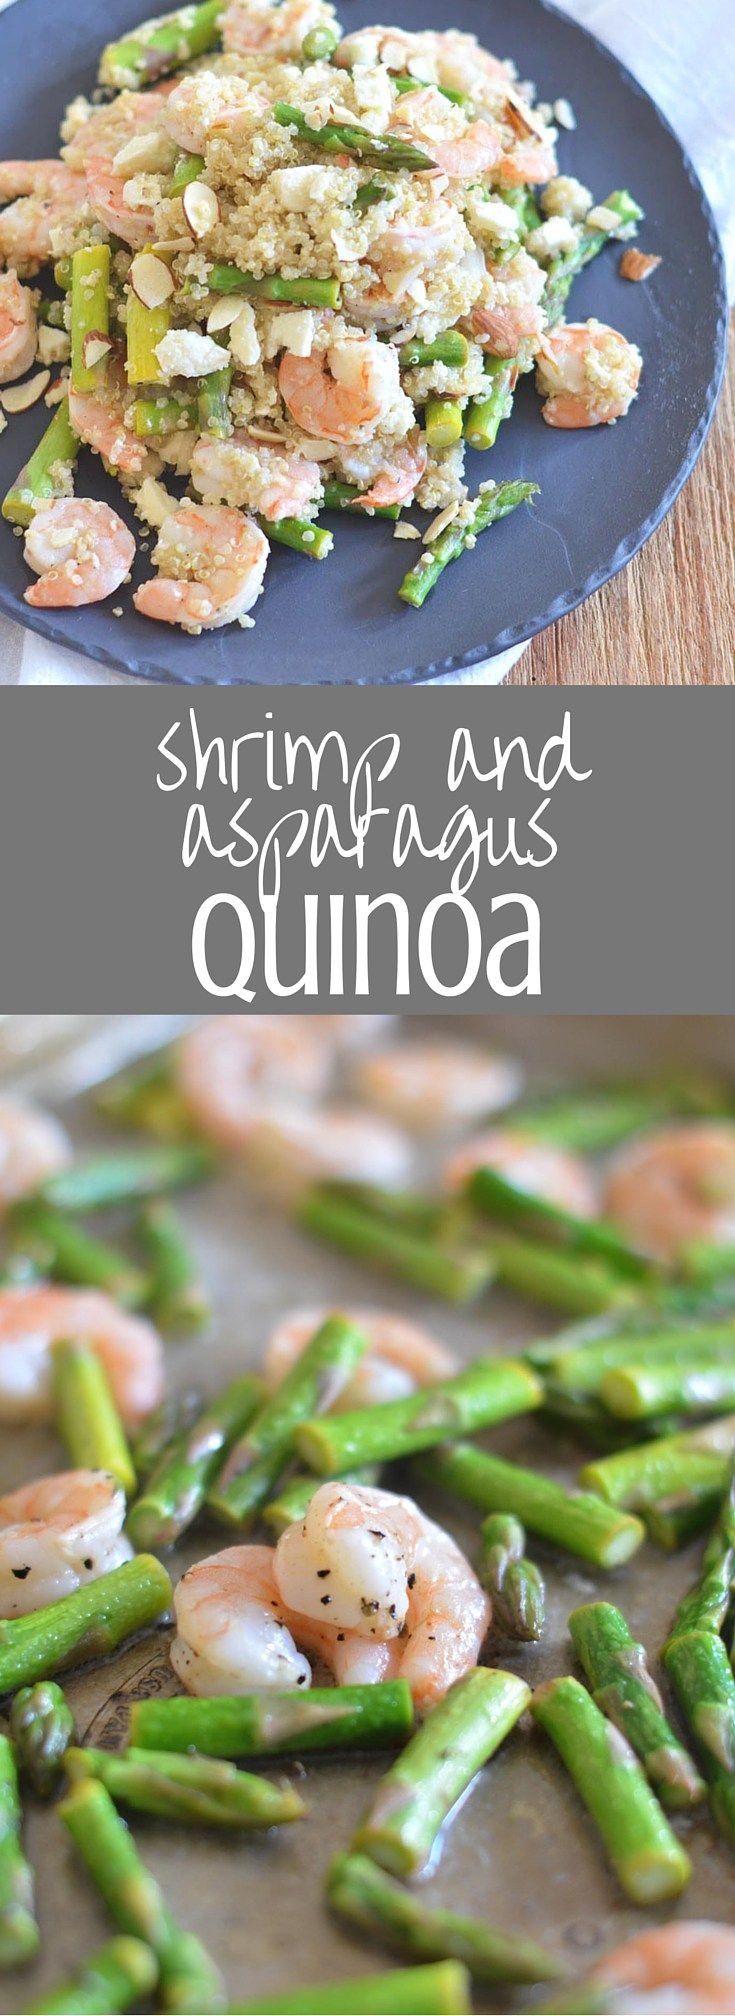 Shrimp and Asparagus Quinoa || A healthy and light lunch or dinner option, this quinoa salad is packed with pan-roasted shrimp and asparagus, fresh lemon, crumbled feta, and crunchy sliced almonds. Pin for later!